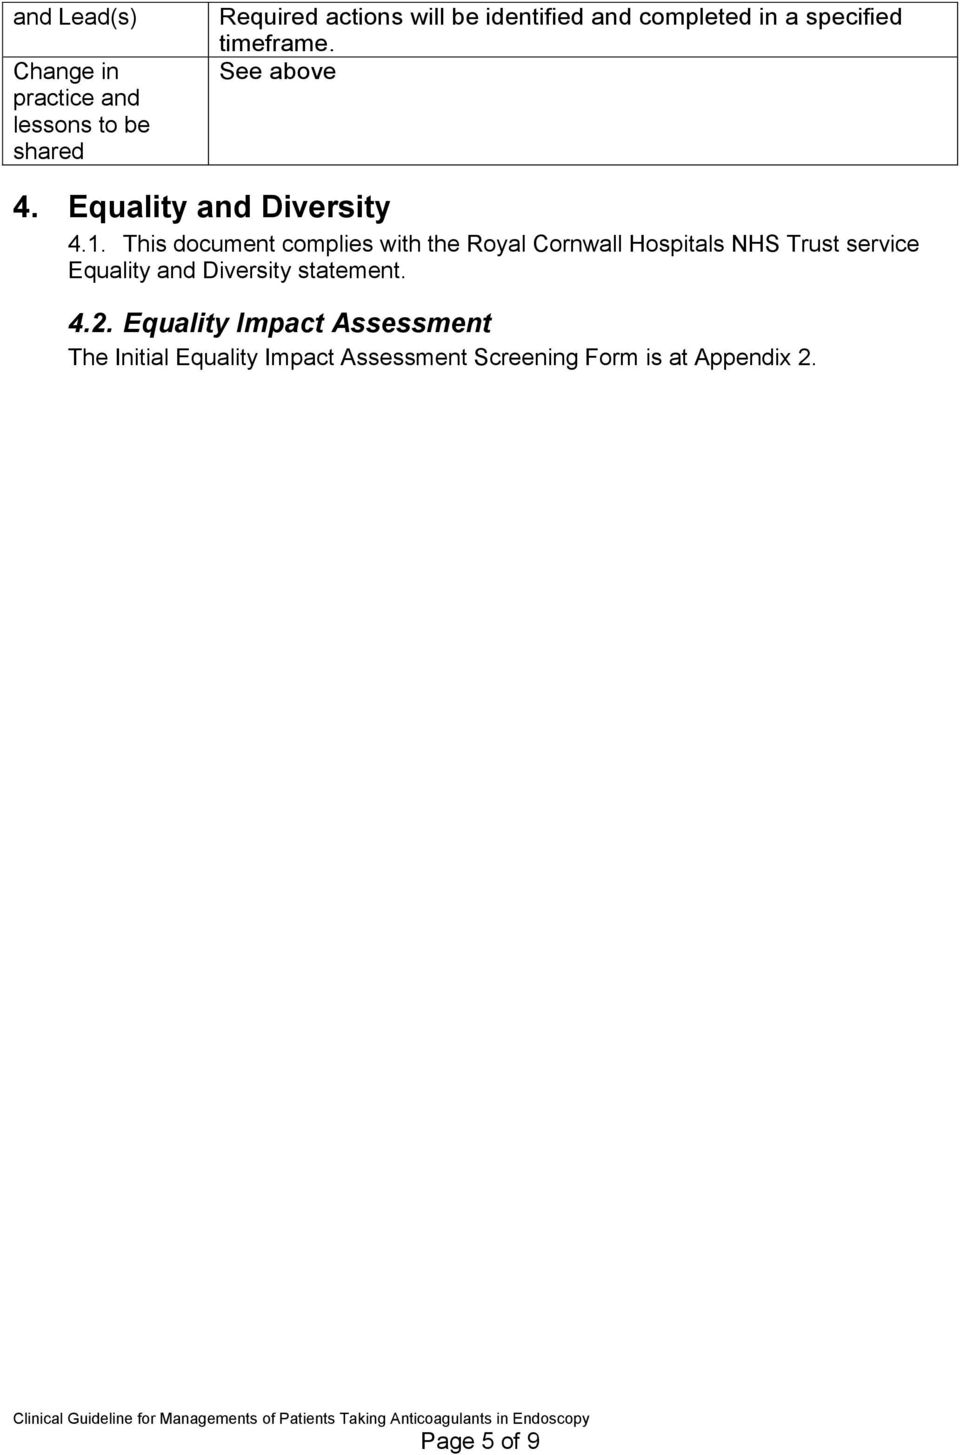 This document complies with the Royal Cornwall Hospitals NHS Trust service Equality and Diversity